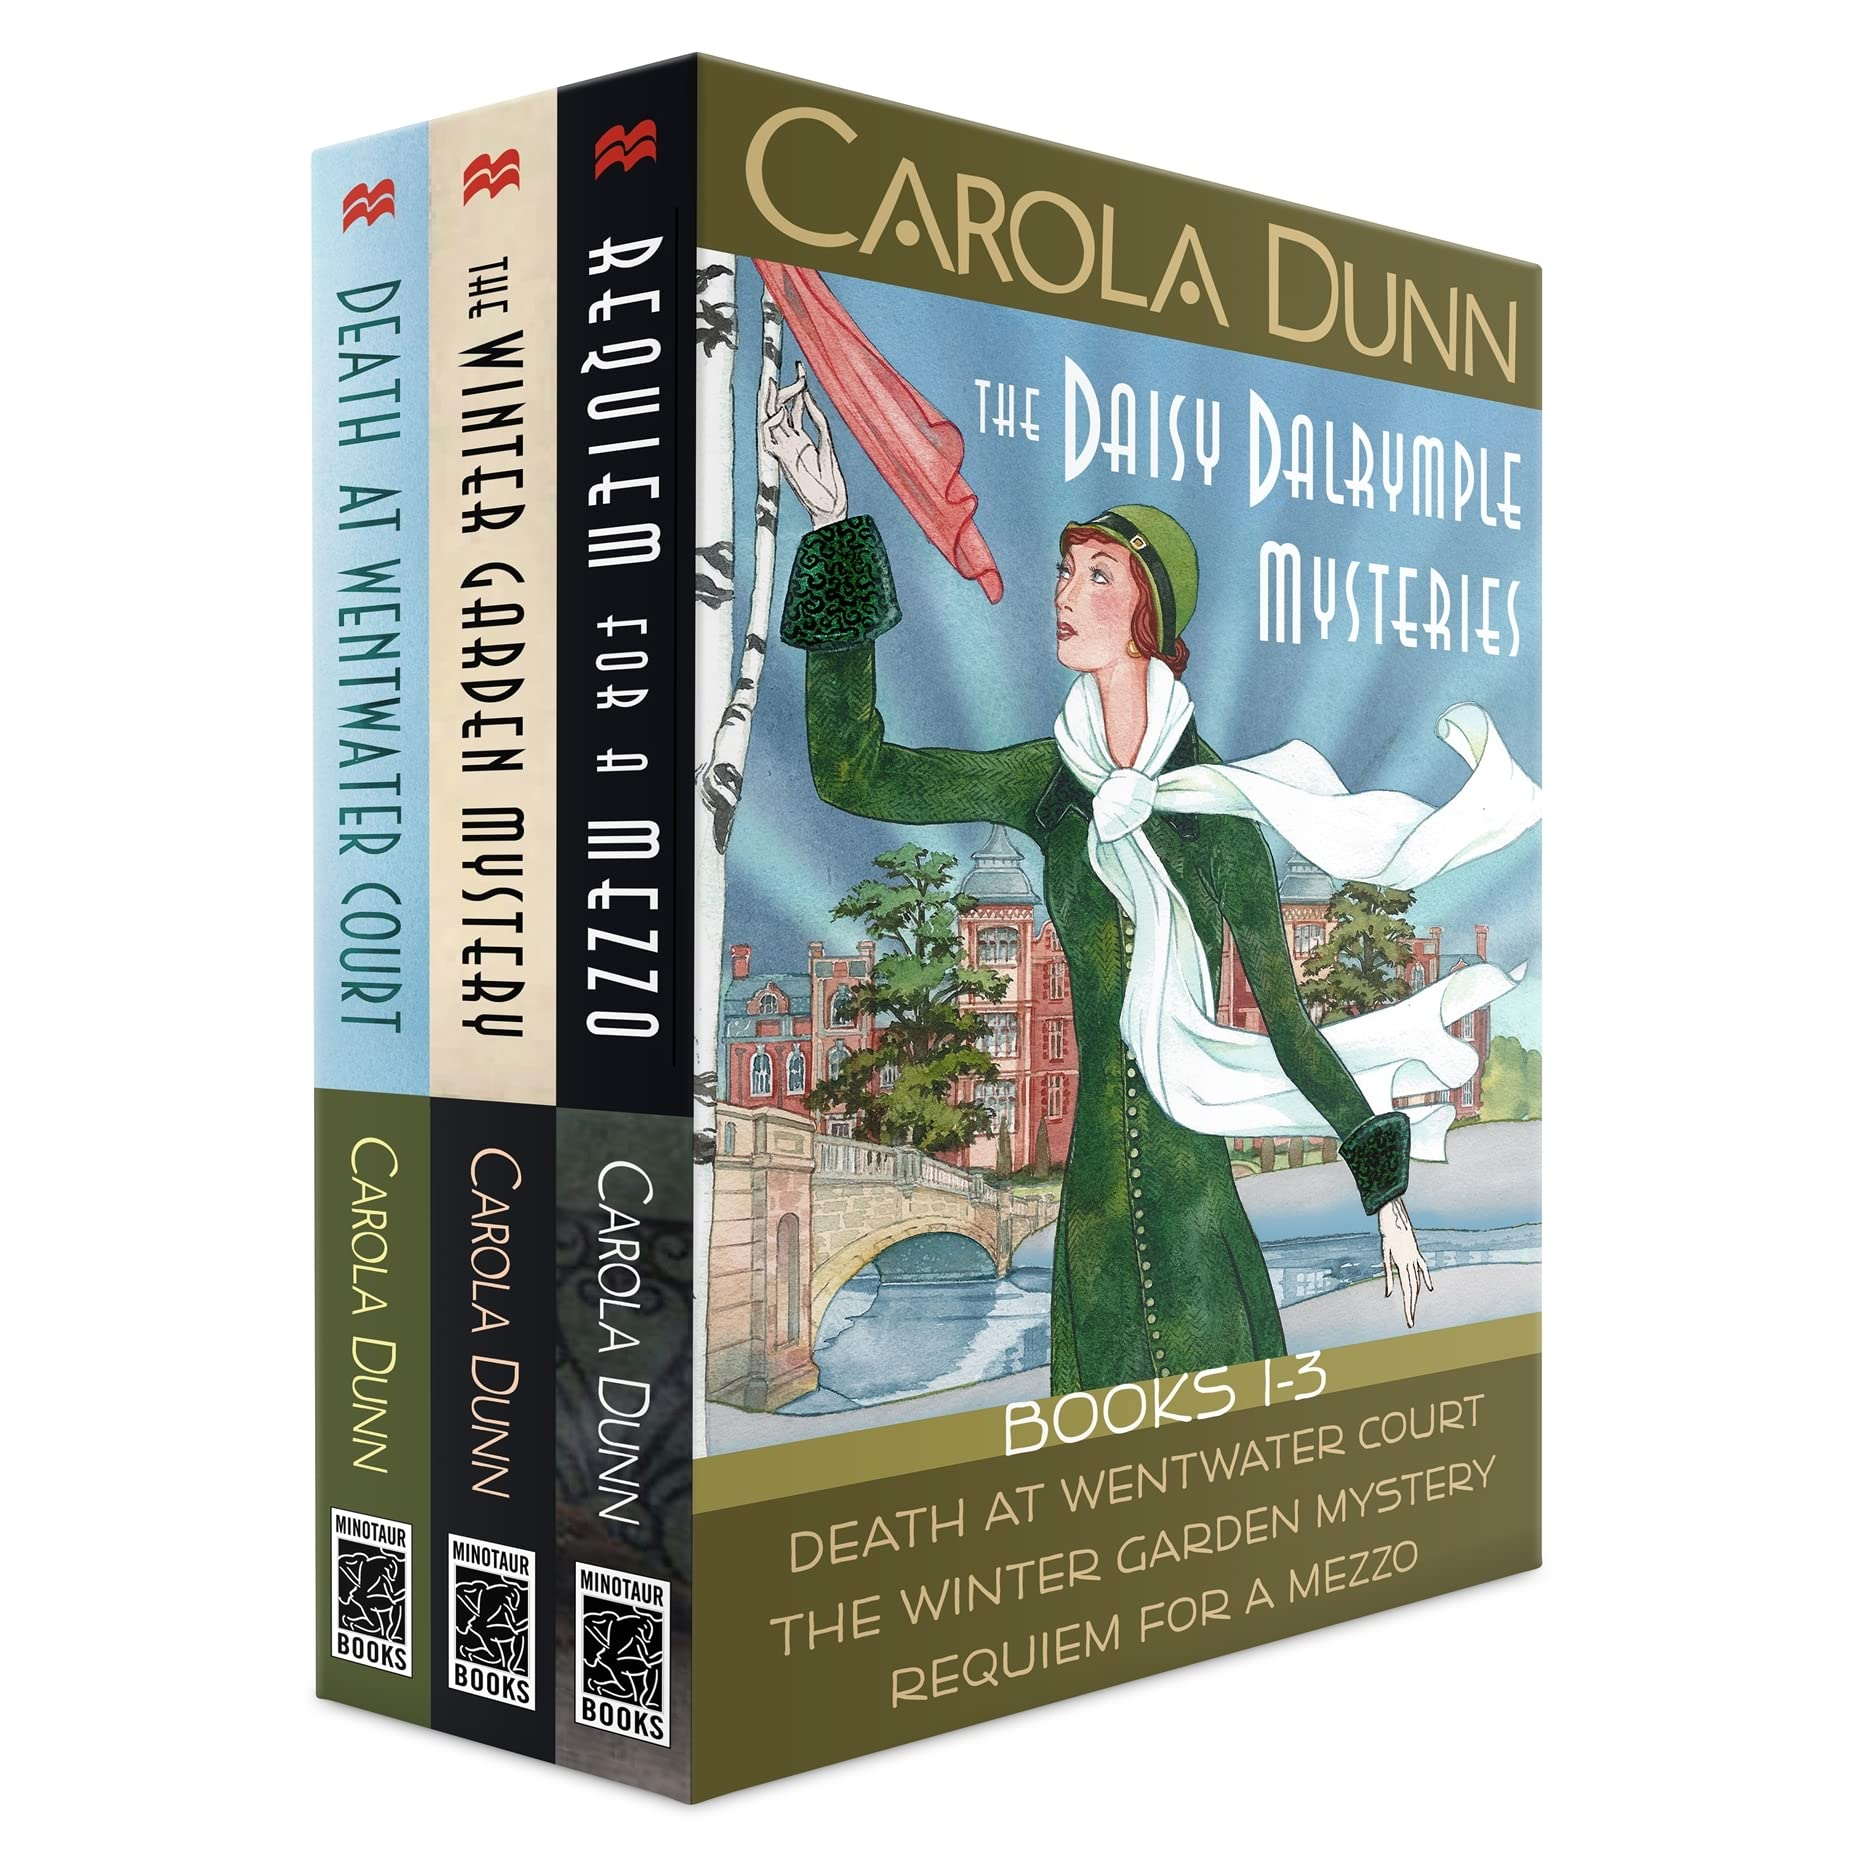 the daisy dalrymple mysteries books 1 3 by carola dunn